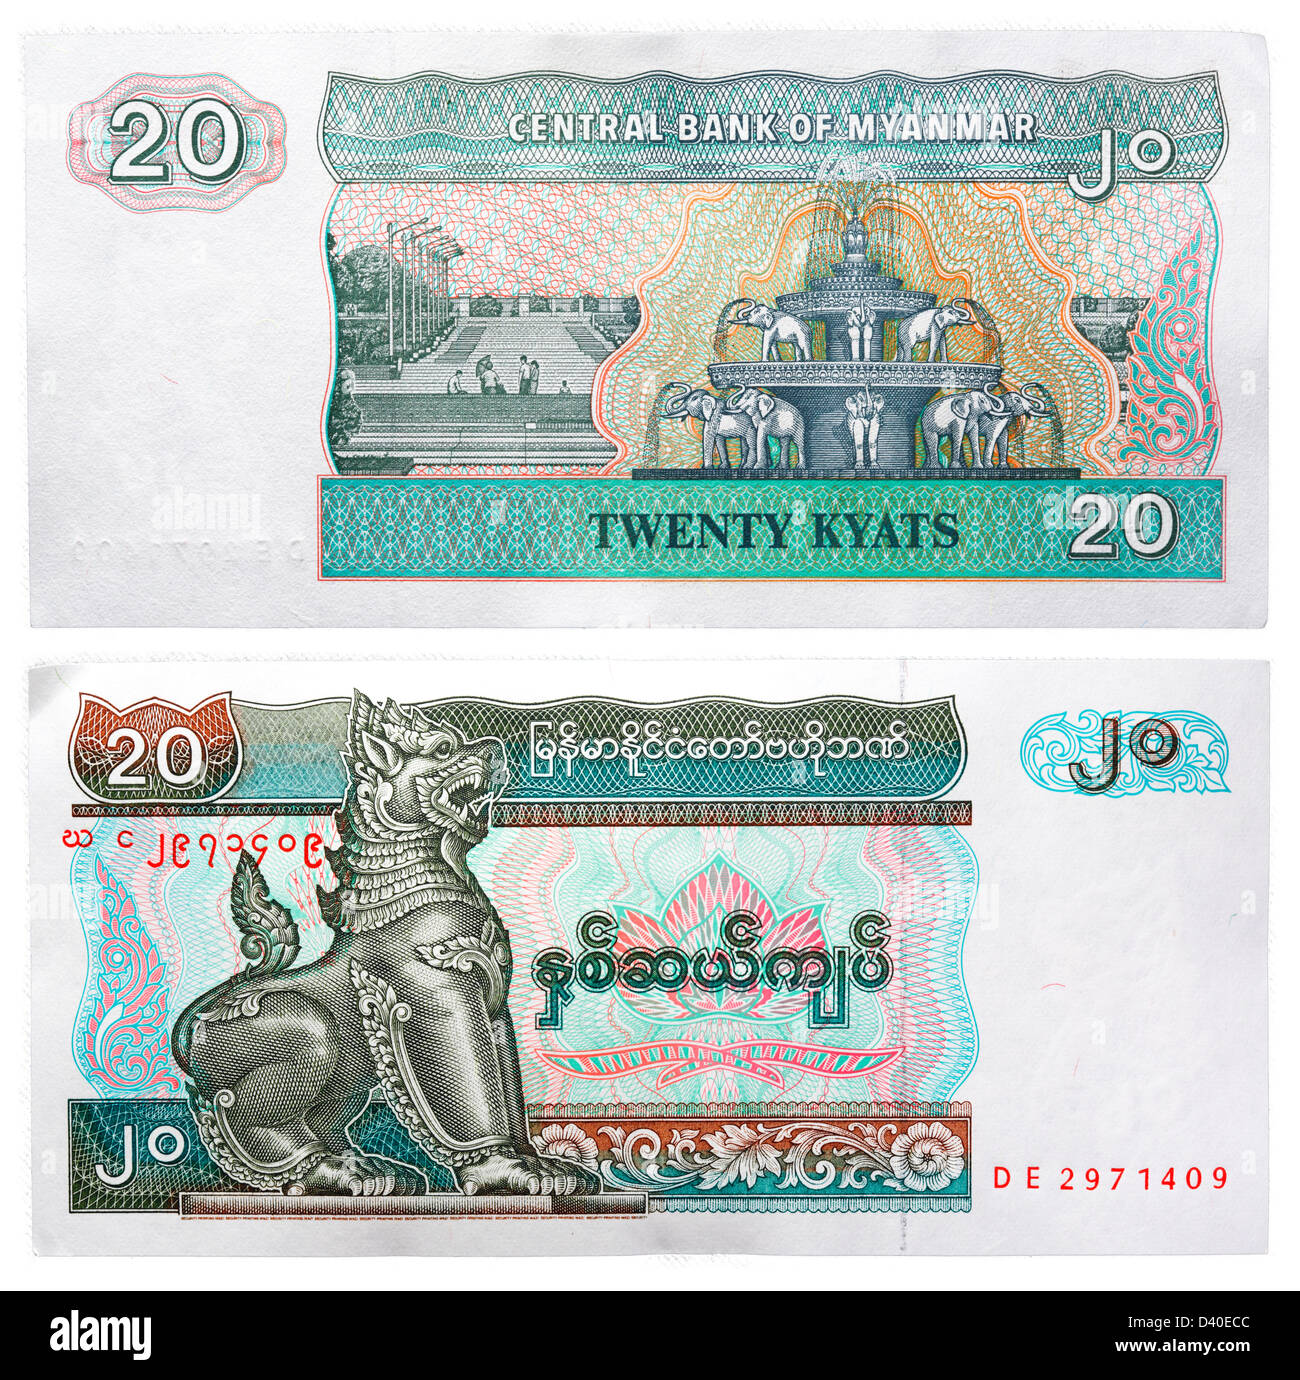 20 Kyats banknote, Mythical animal Chinze and elephant fountain, Myanmar, 1994 - Stock Image